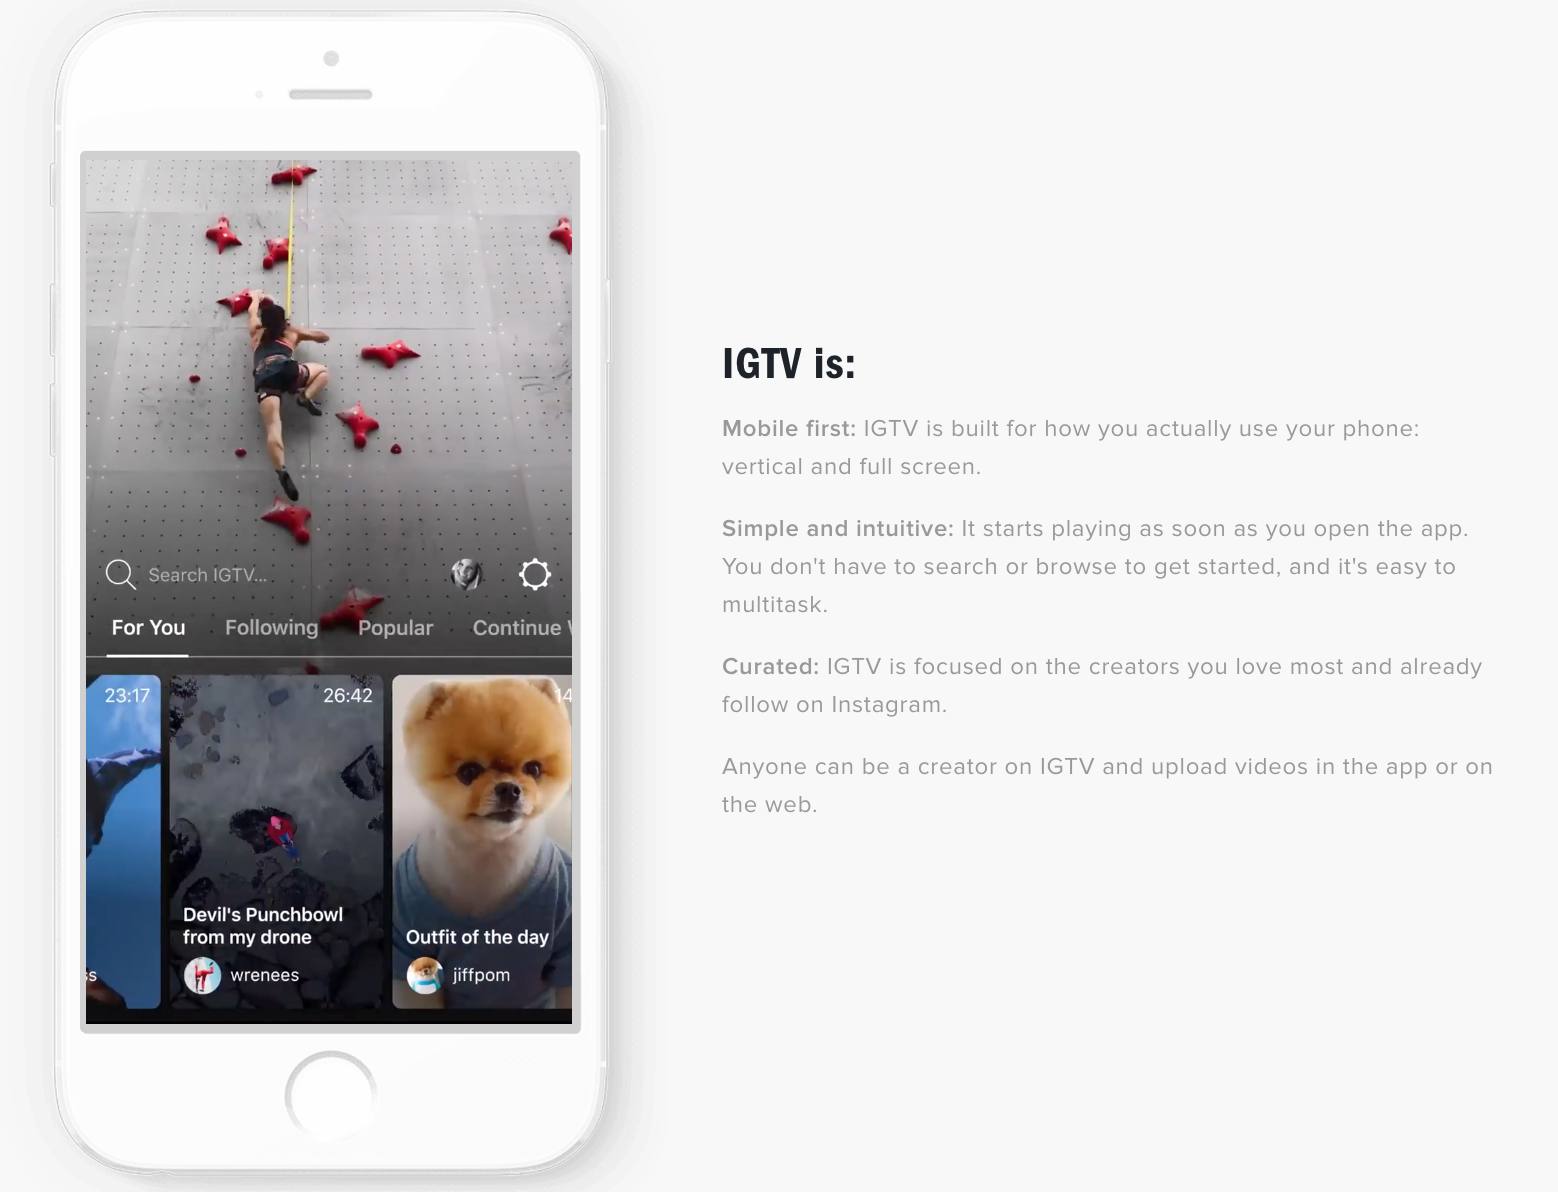 Instagram just declared war on YouTube with the launch of 'IGTV'